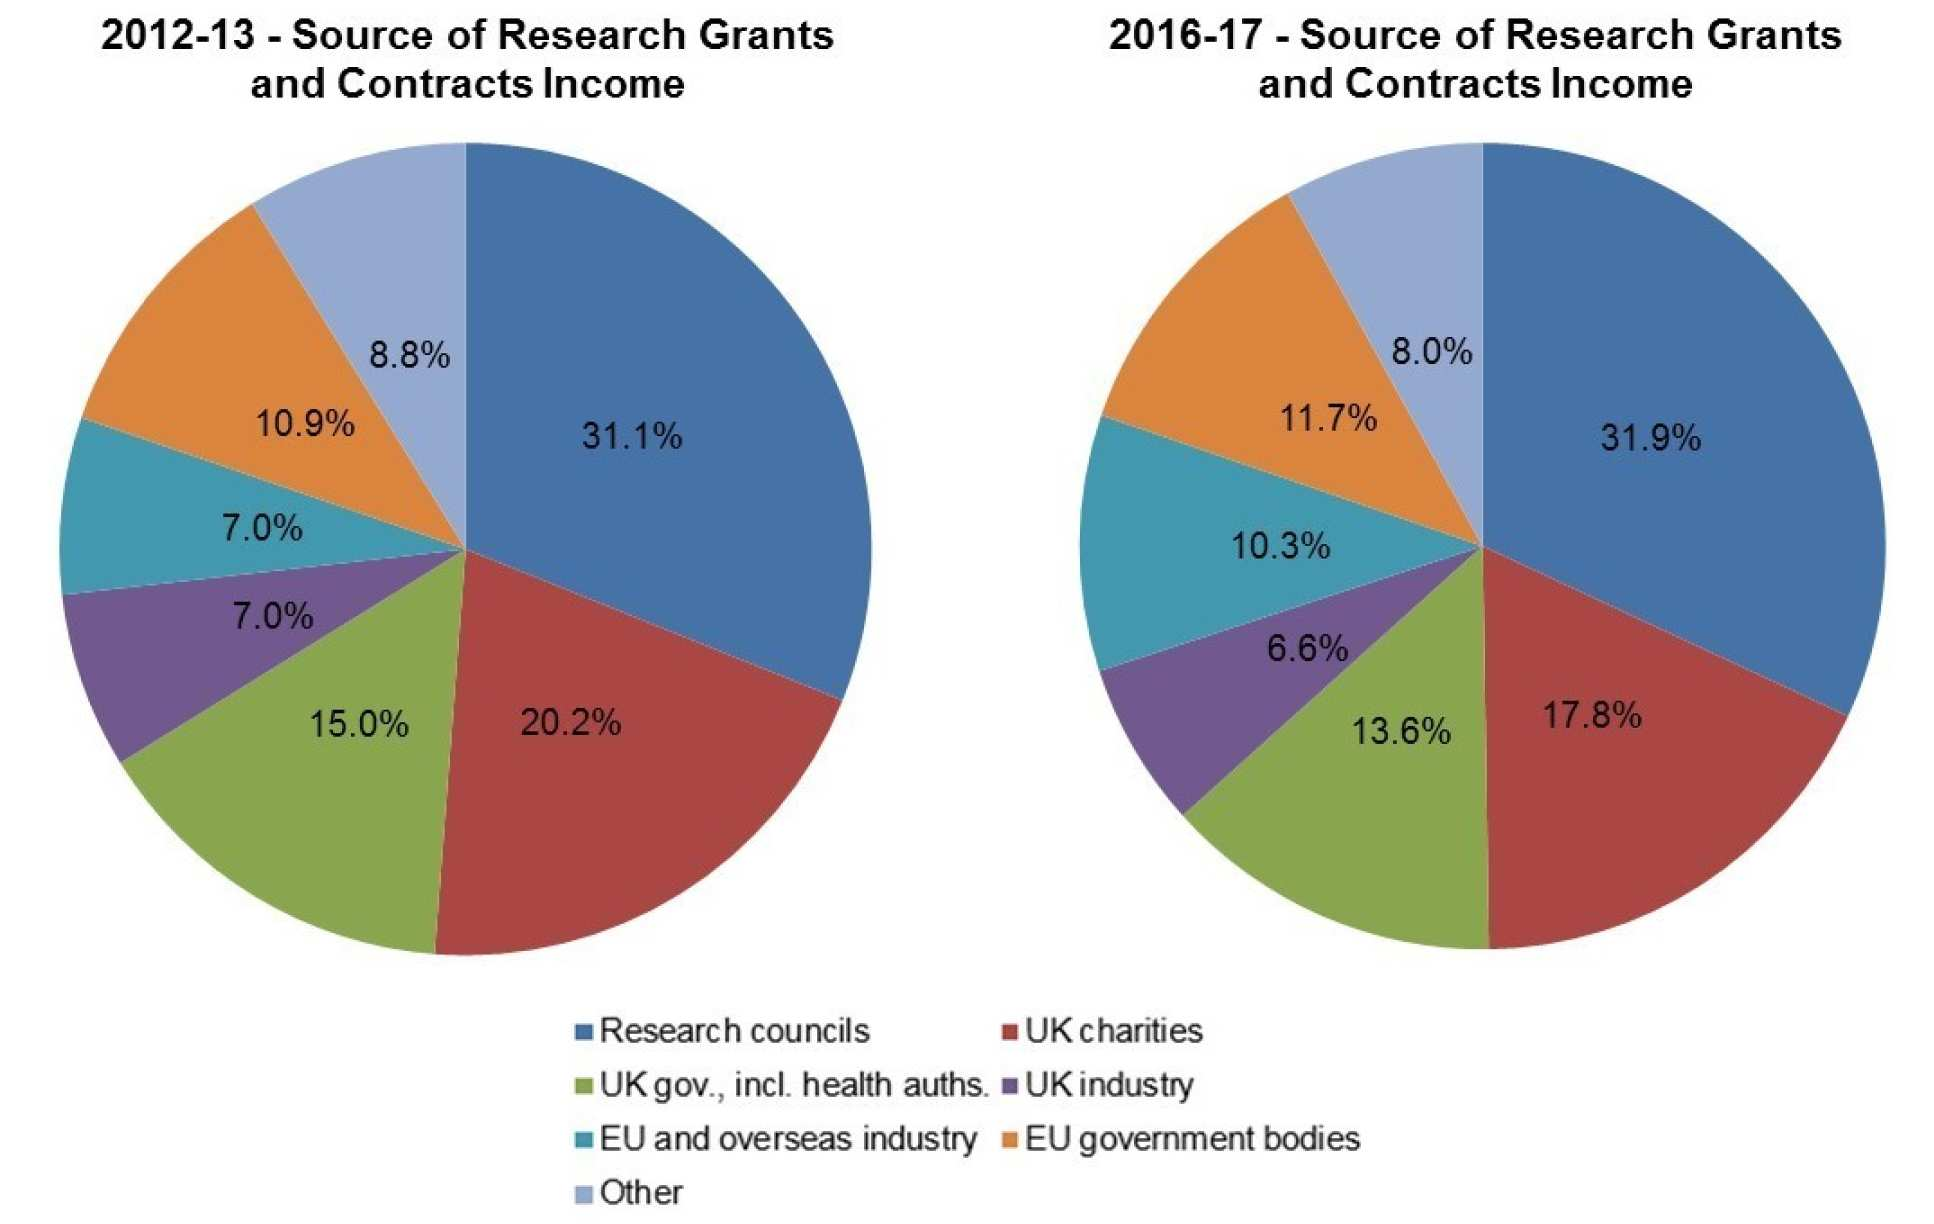 Research Grants and Contracts Income by Source